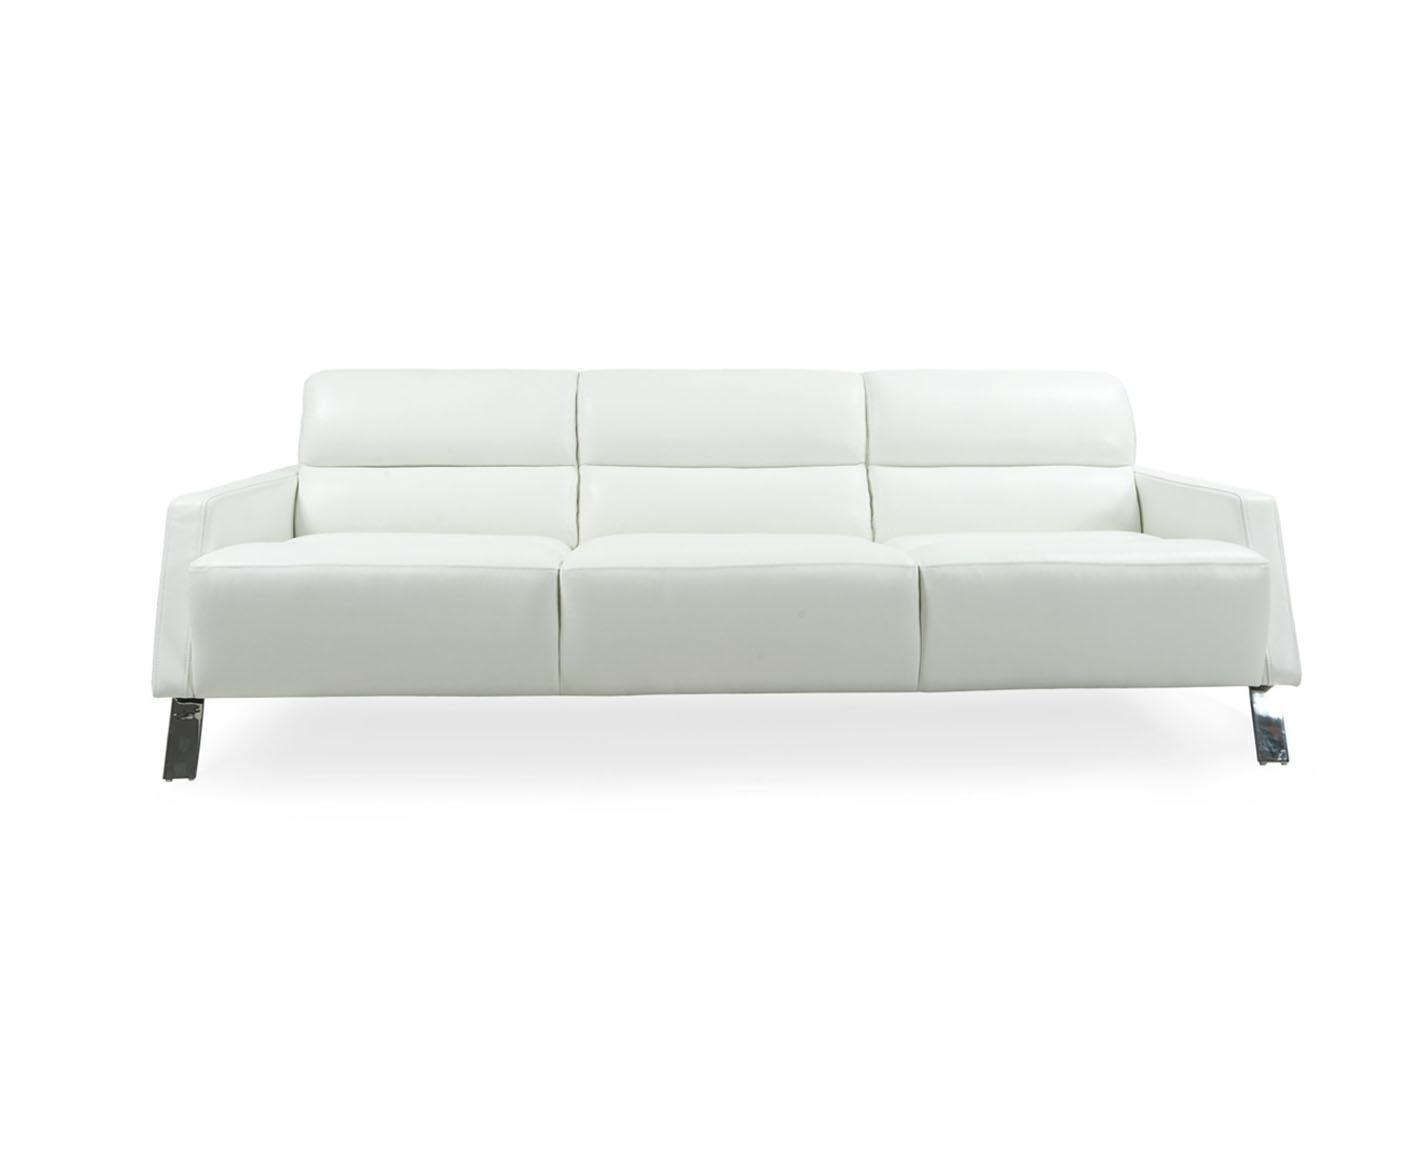 Modern Leather Furniture | Modern Design Sofas In Blair Leather Sofas (Image 11 of 20)